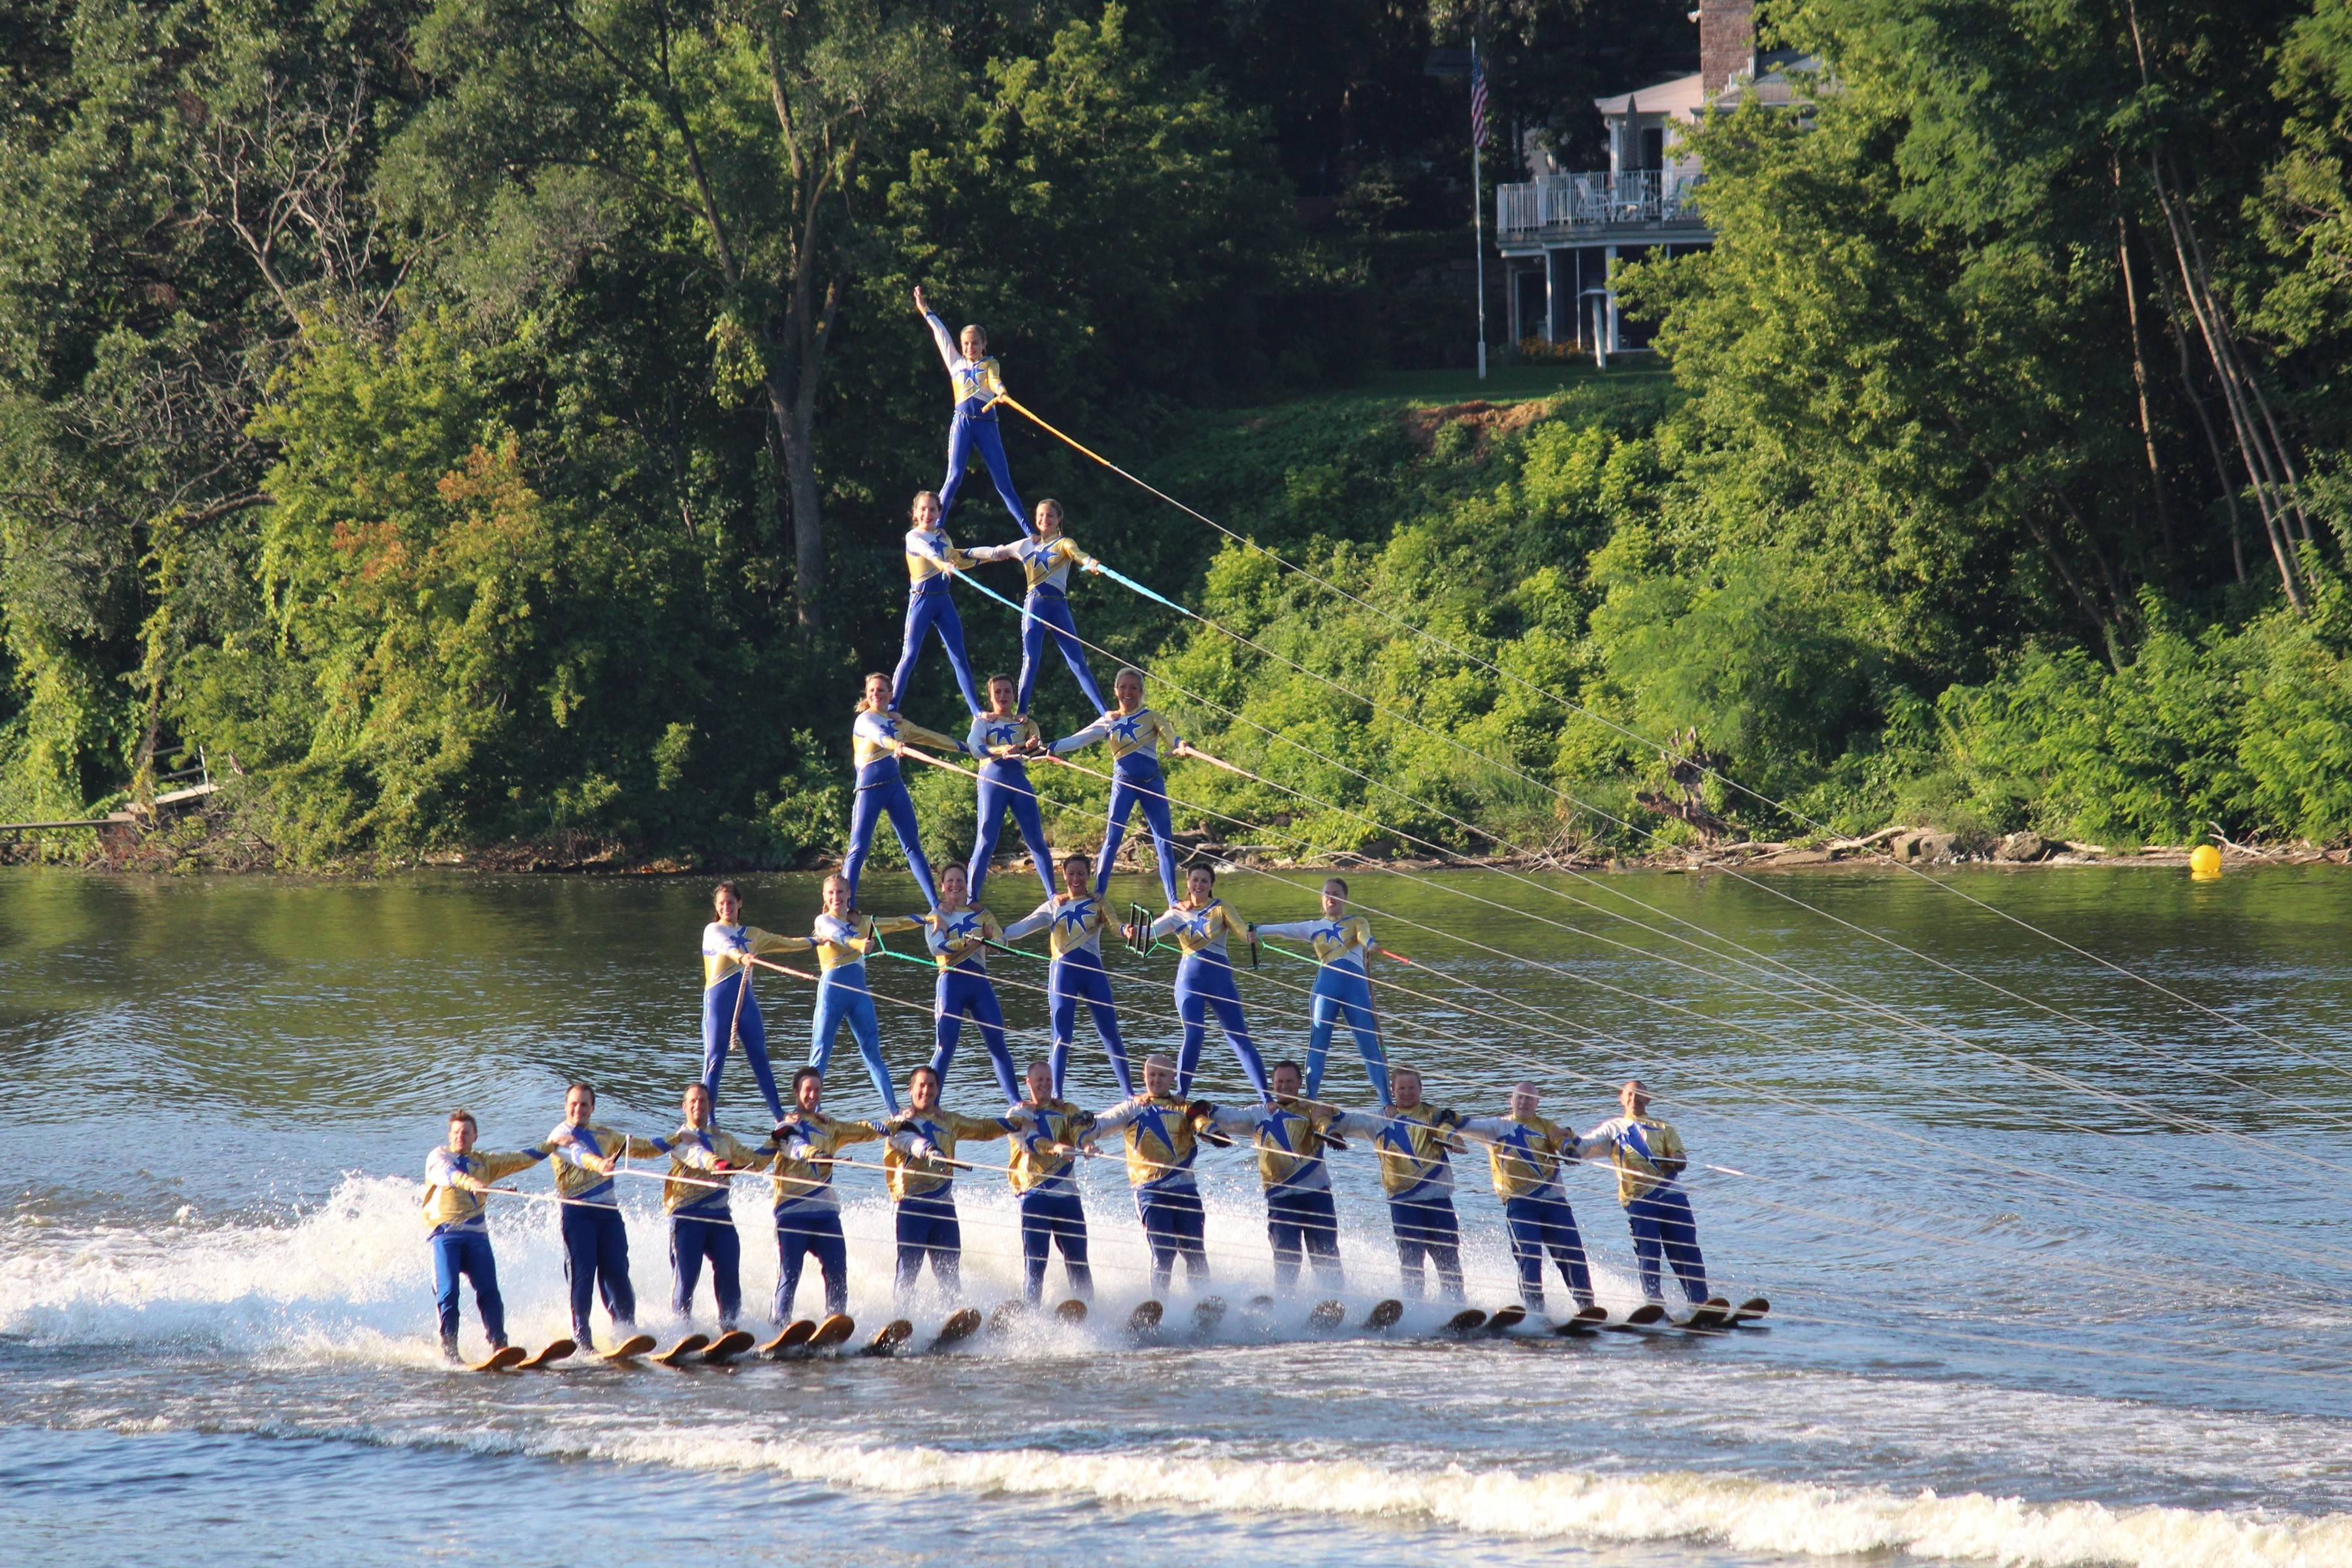 The national champion Rock Aqua Jays perform water ski shows at the team's stadium in Janesville, Wisconsin, Wednesdays and Sundays in June.